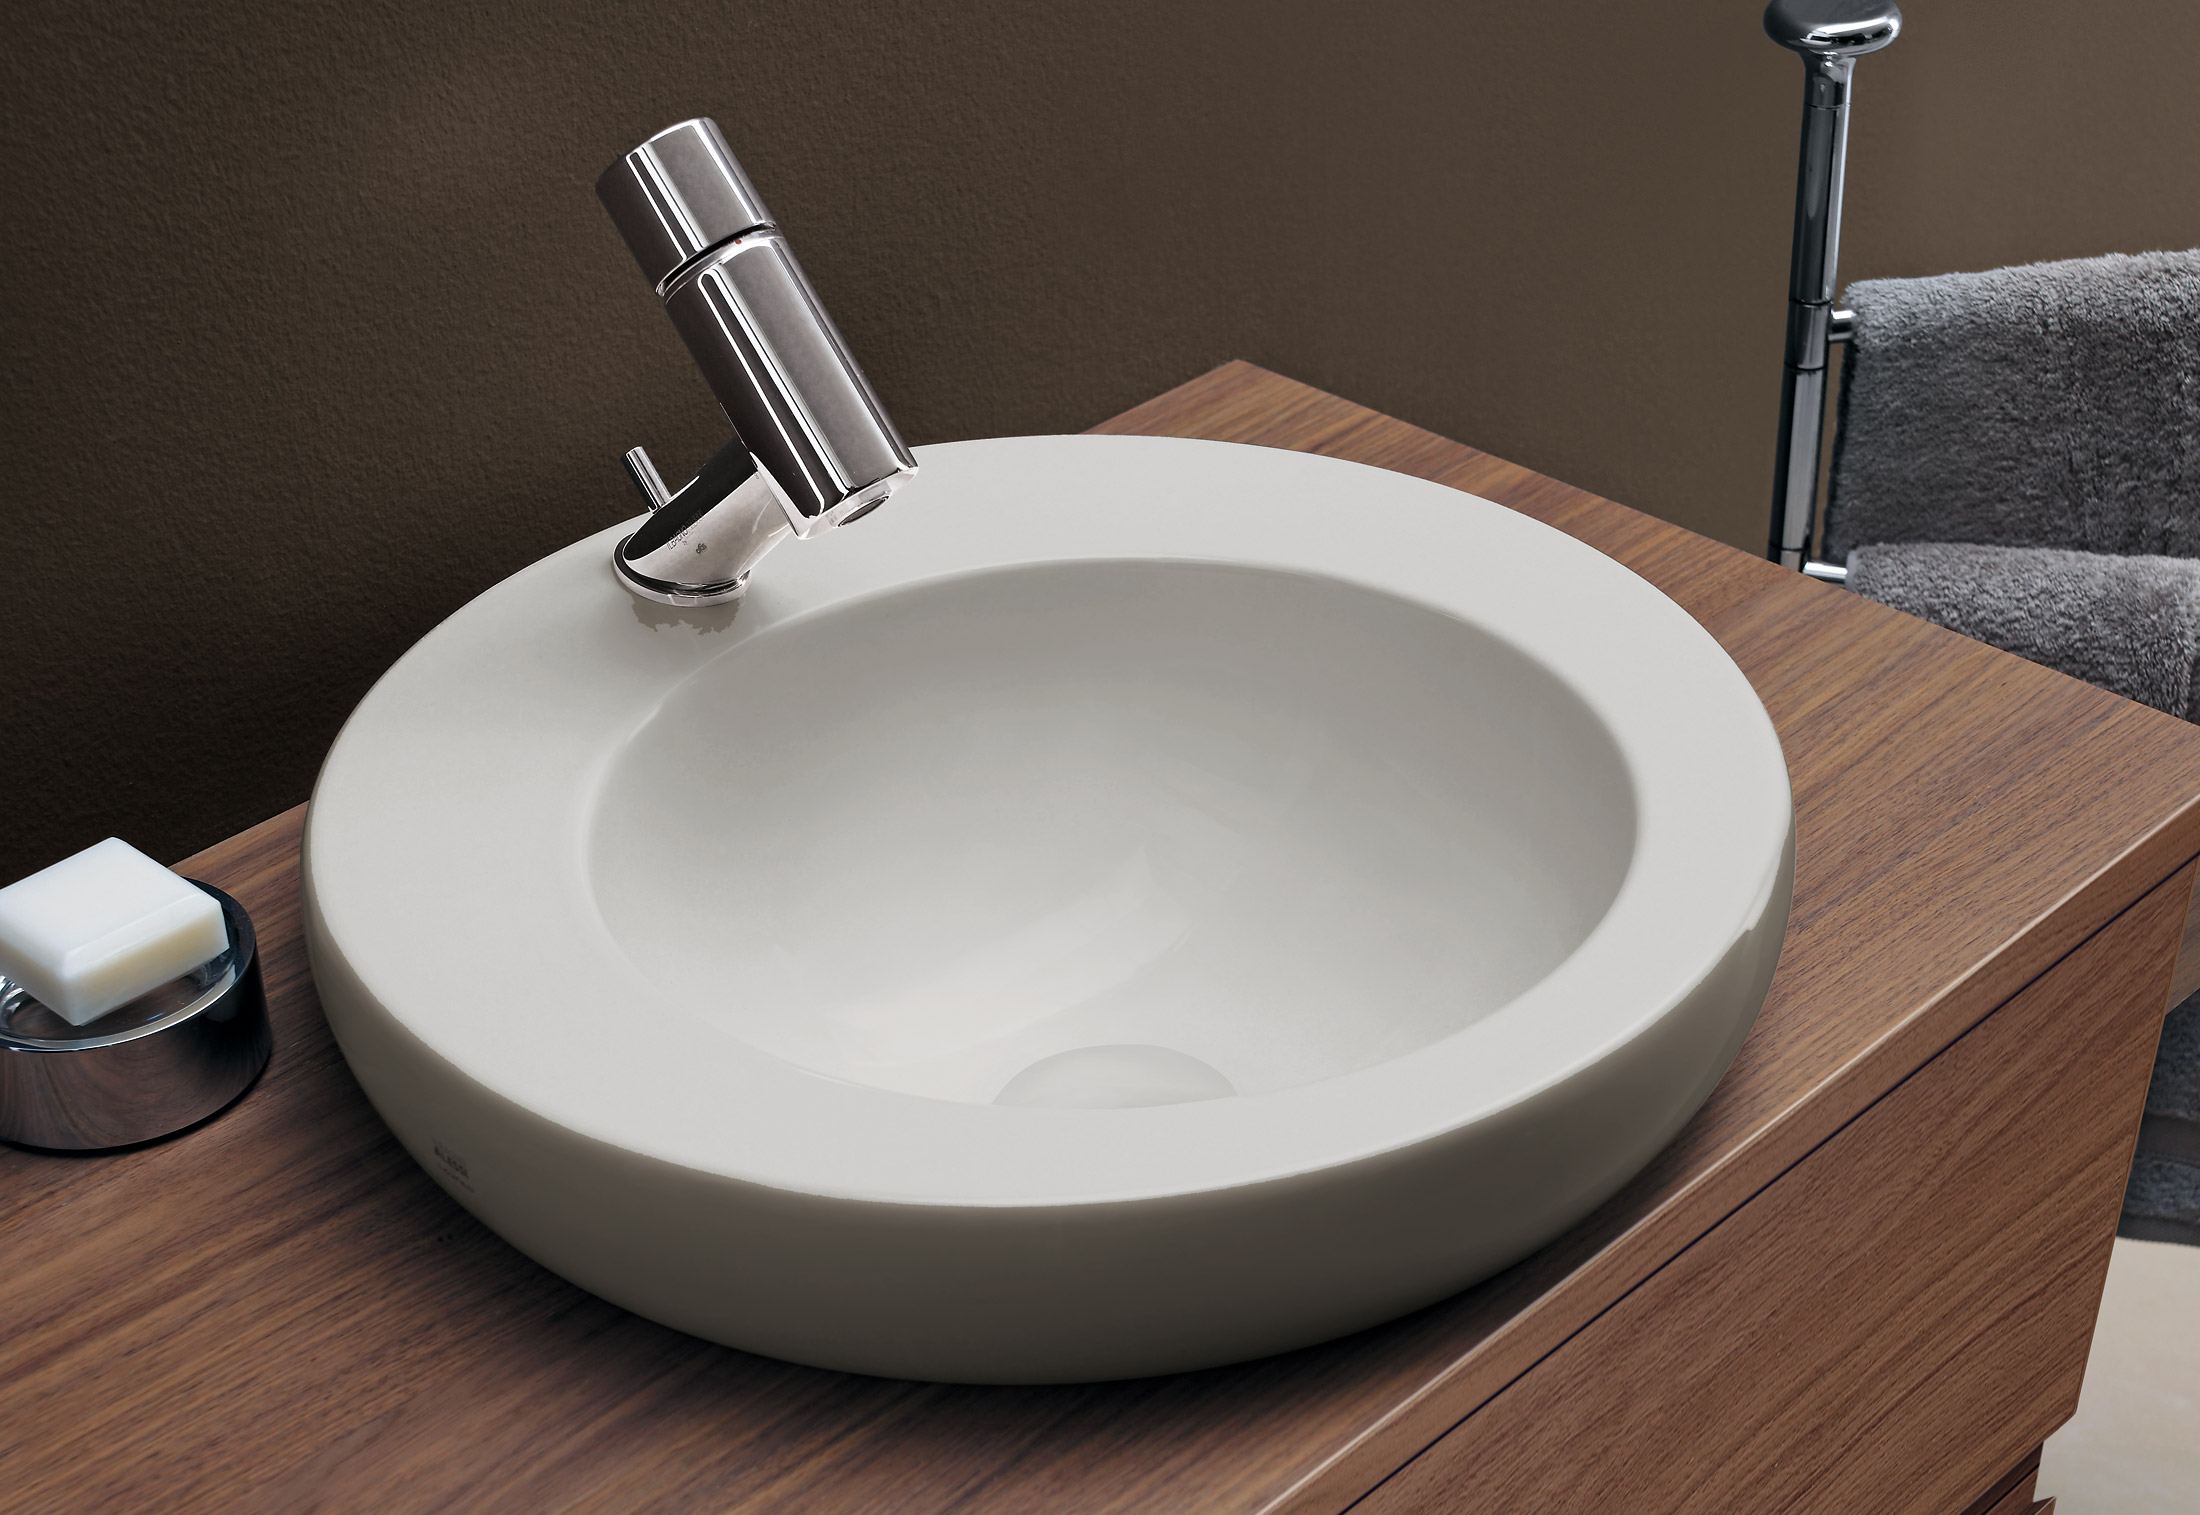 https://cdn.stylepark.com/manufacturers/l/laufen/produkte/il-bagno-alessi-one-double-washbasin-bowl/il-bagno-alessi-one-double-washbasin-bowl-2.jpg